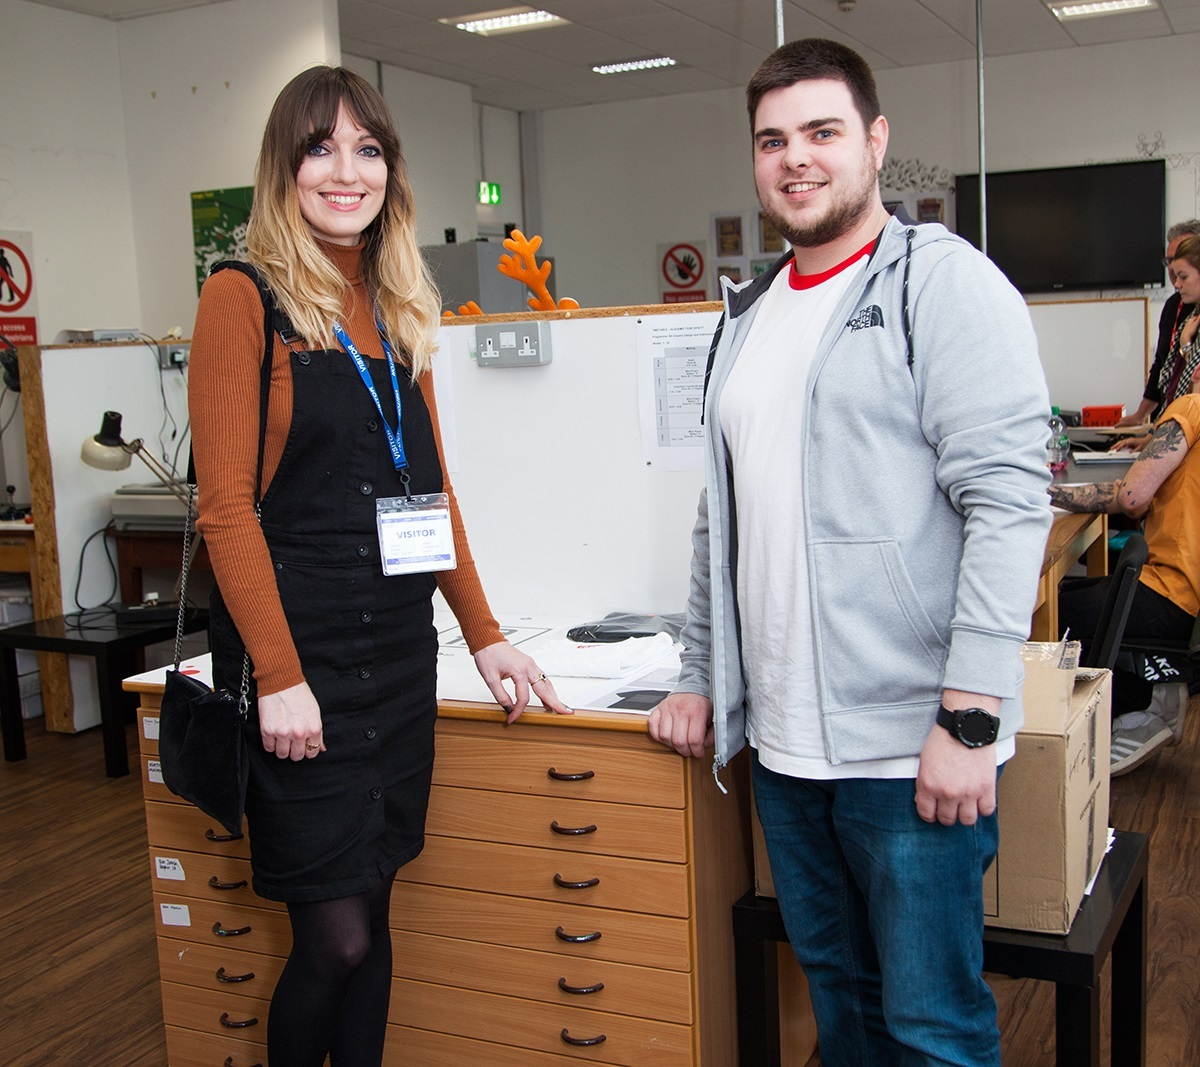 FASHION: Angela Keeler, left, a graphic designer from clothing company Superdry, with Cleveland College of Art and Design student David Harker